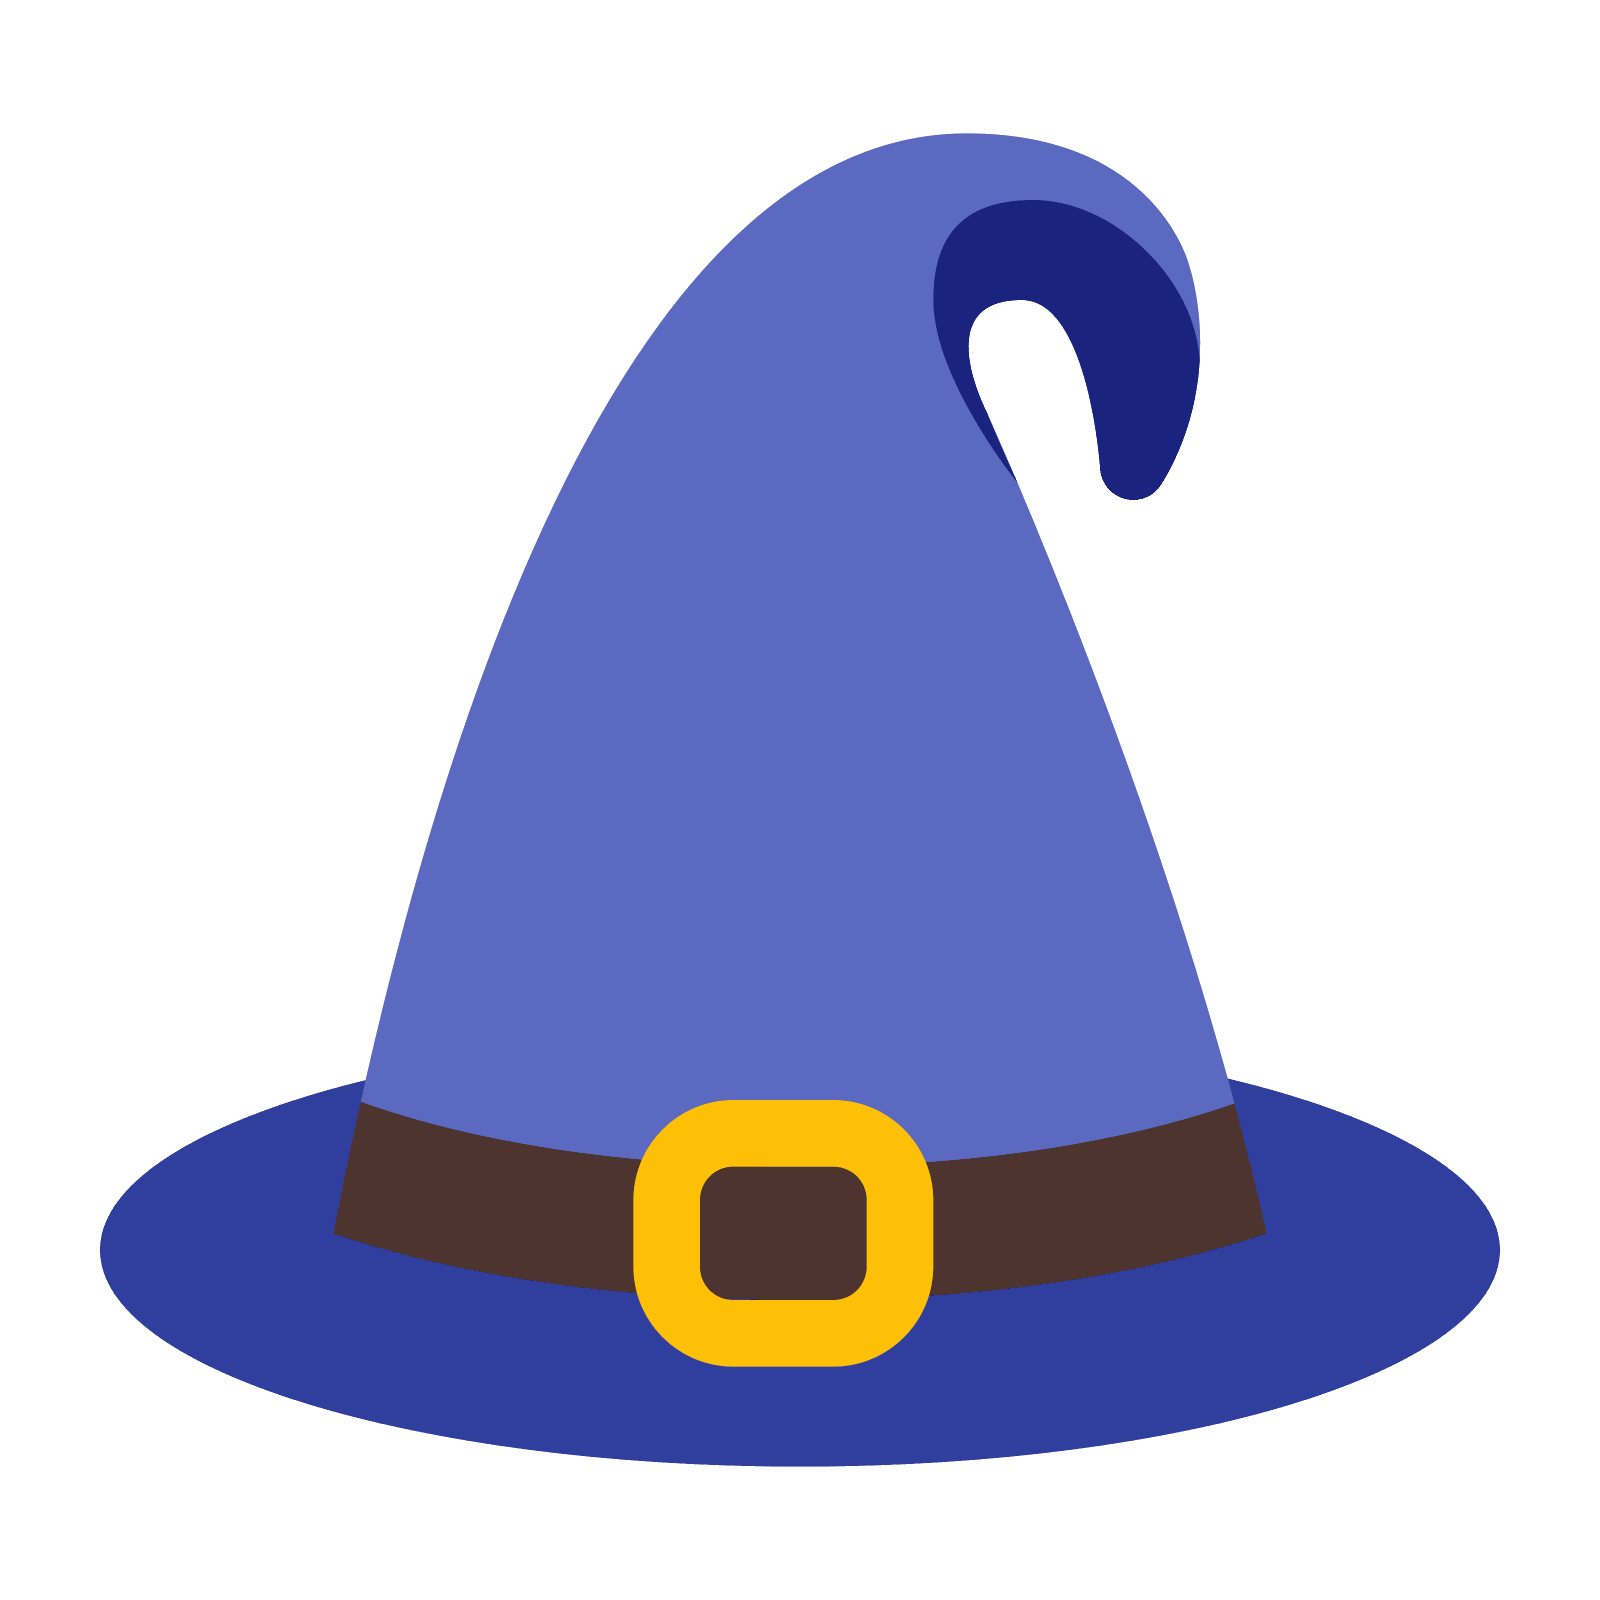 Witch clipart profile. Icon free download png